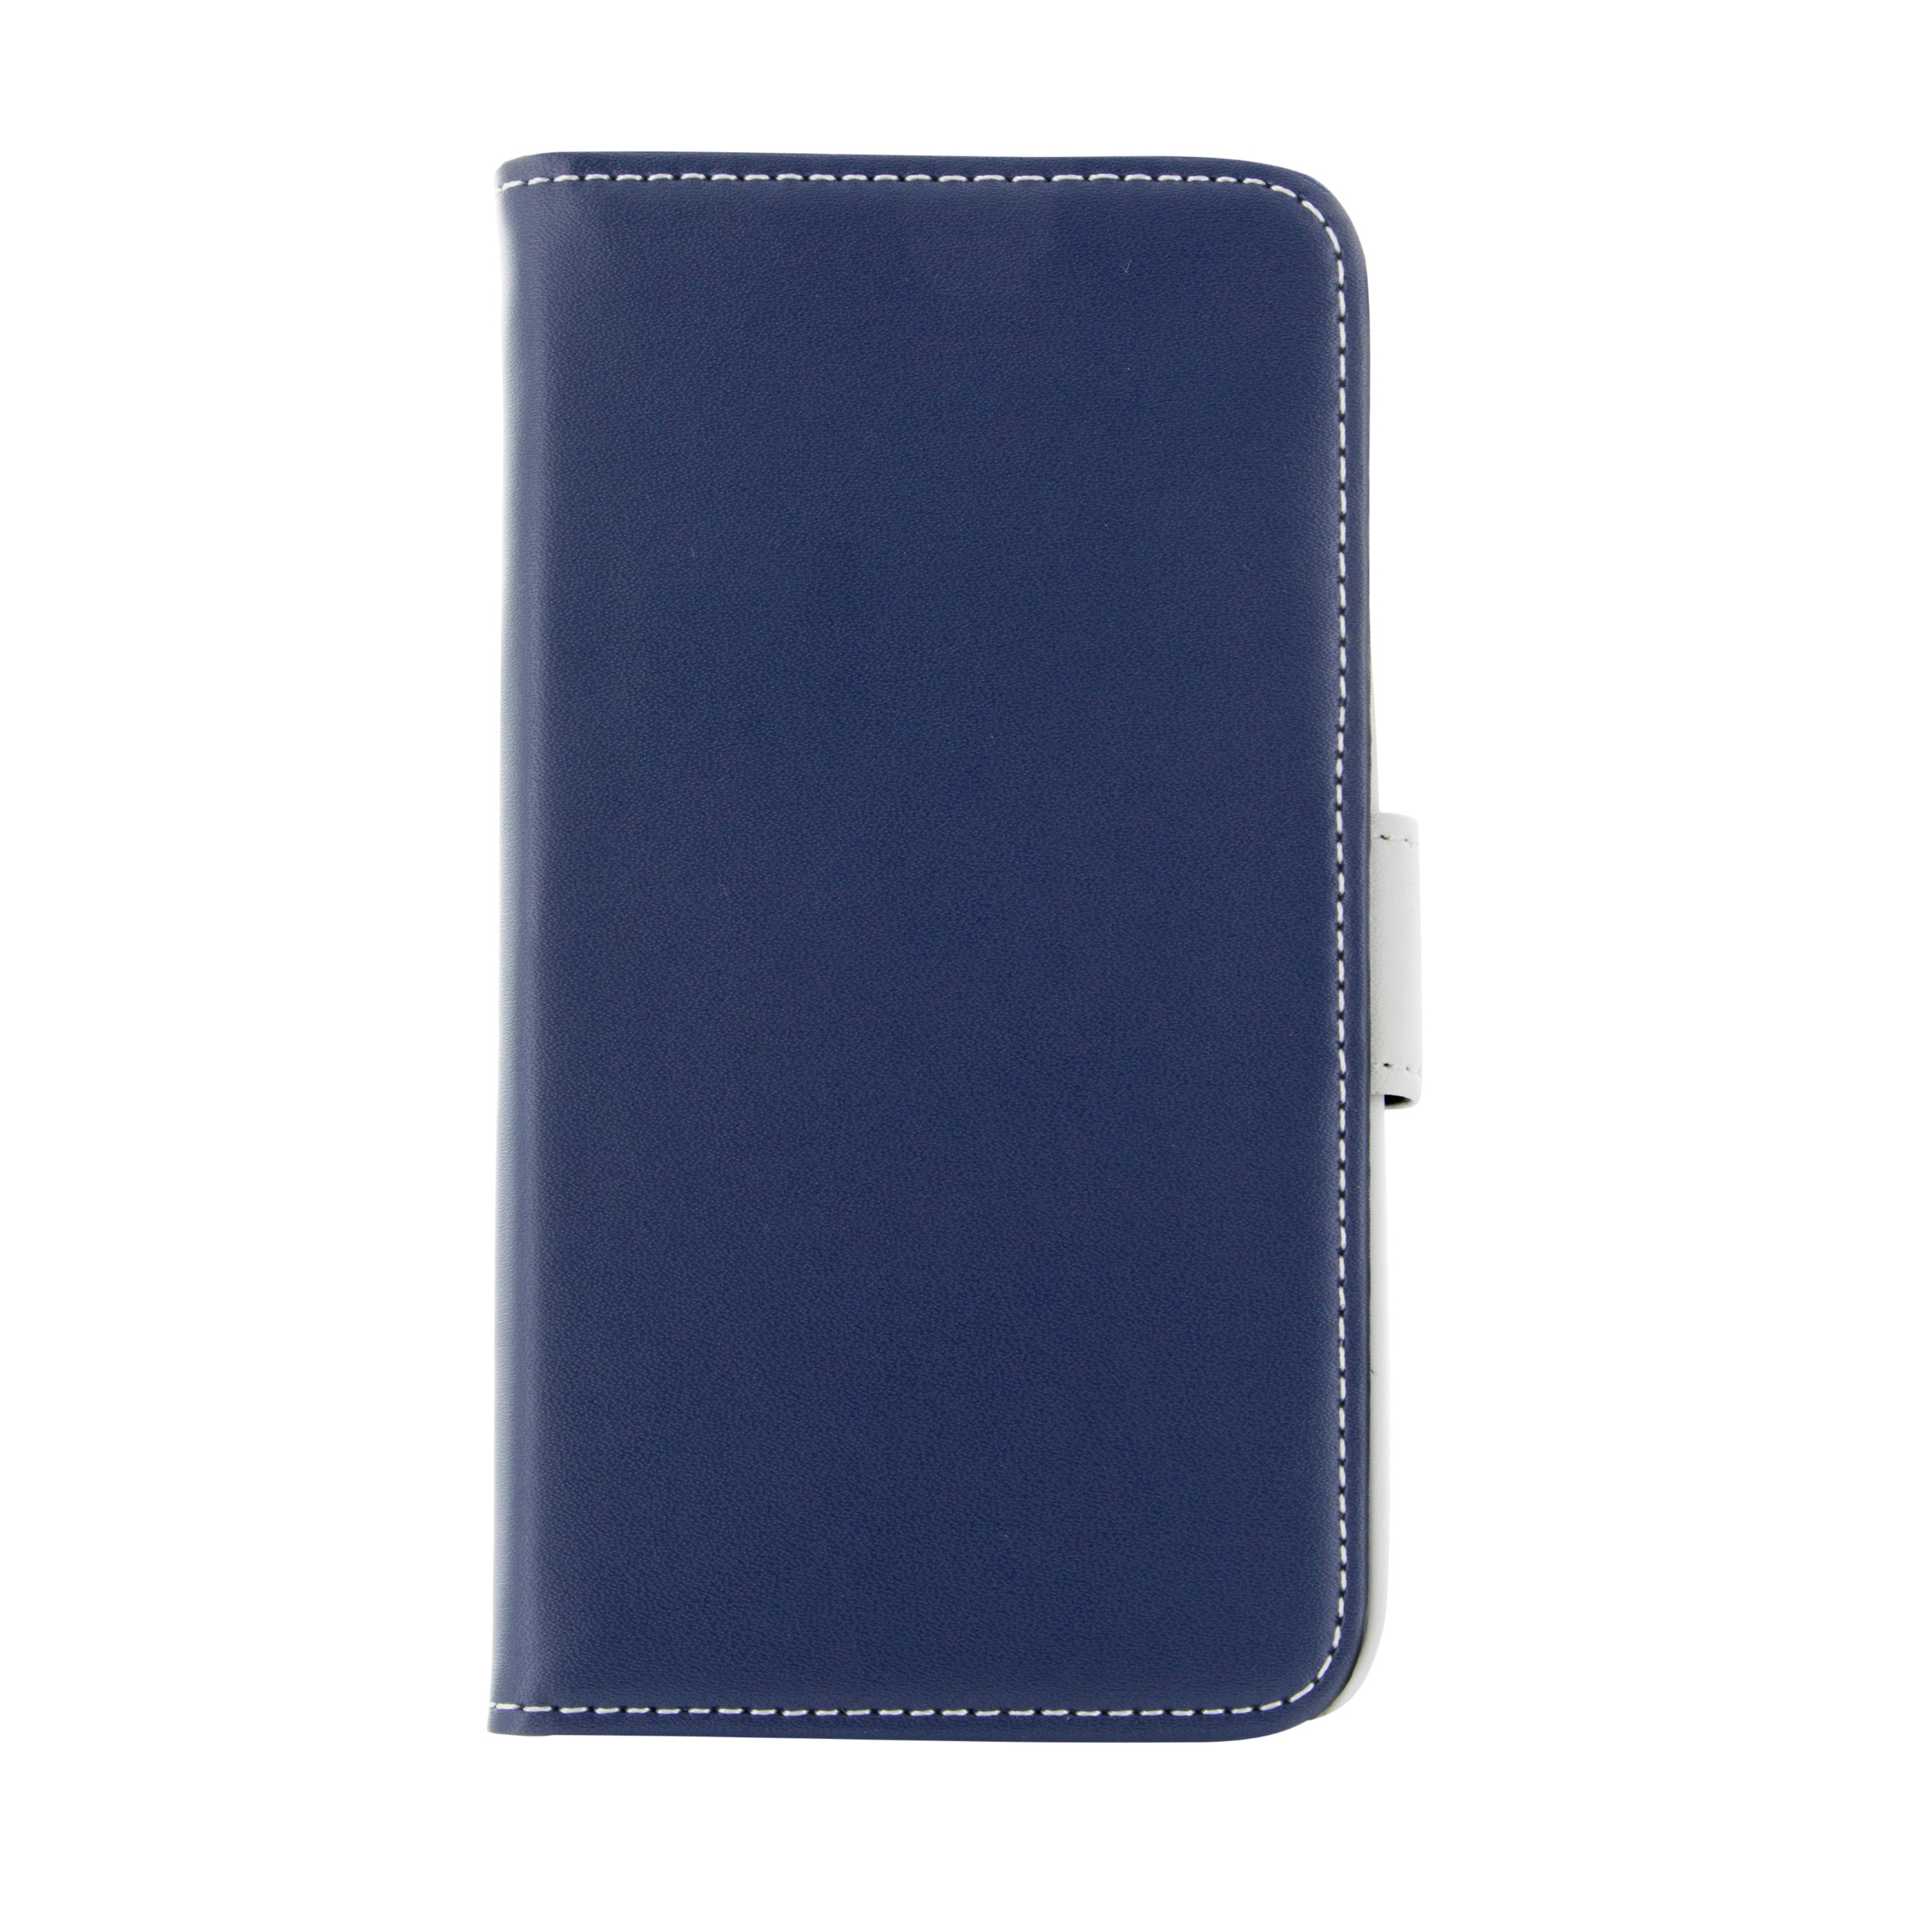 Samsung Galaxy S6, wallet extended, blue